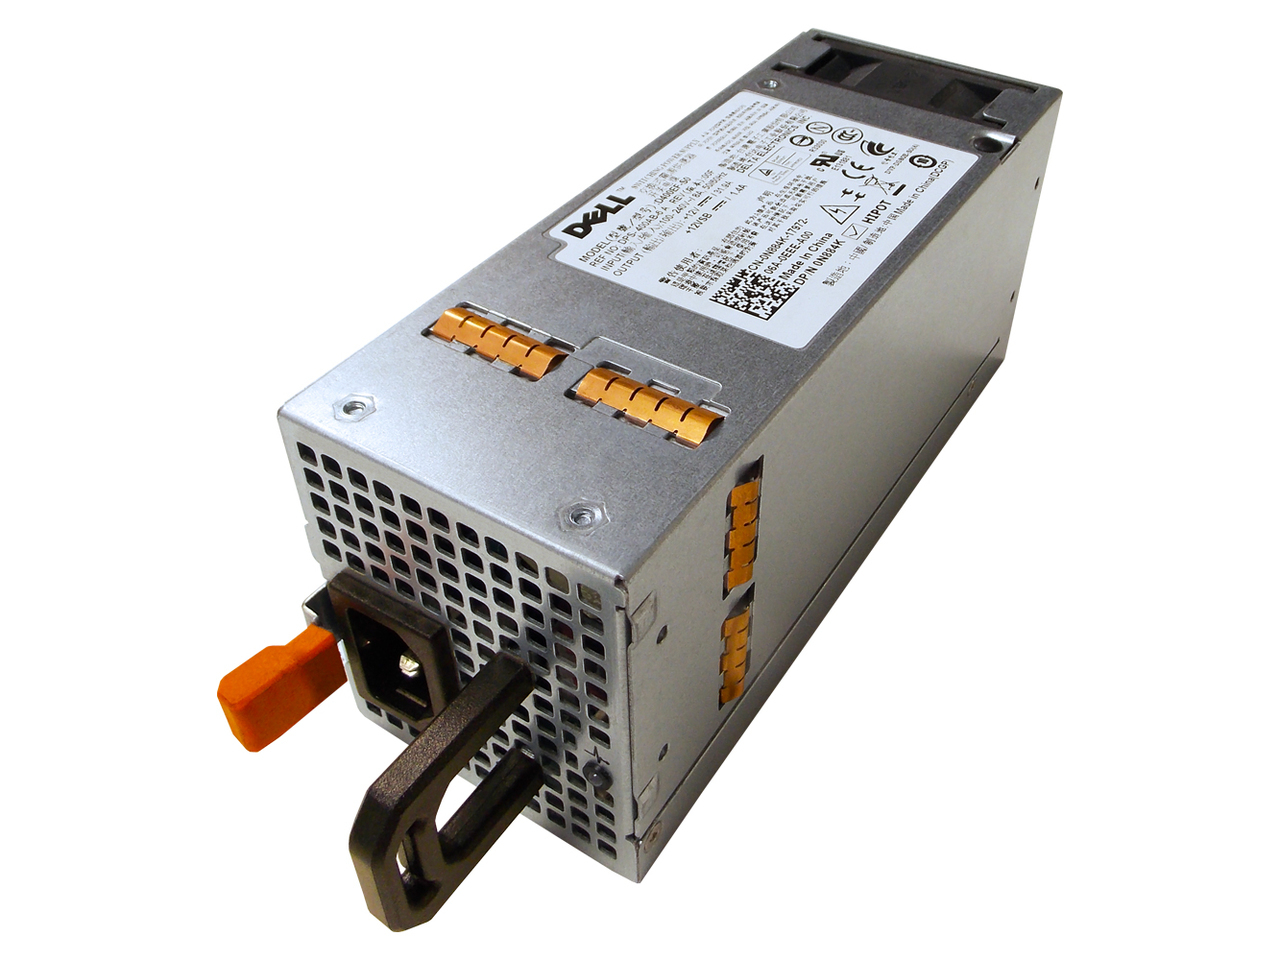 N884K Dell PowerEdge T310 400W Redundant Power Supply